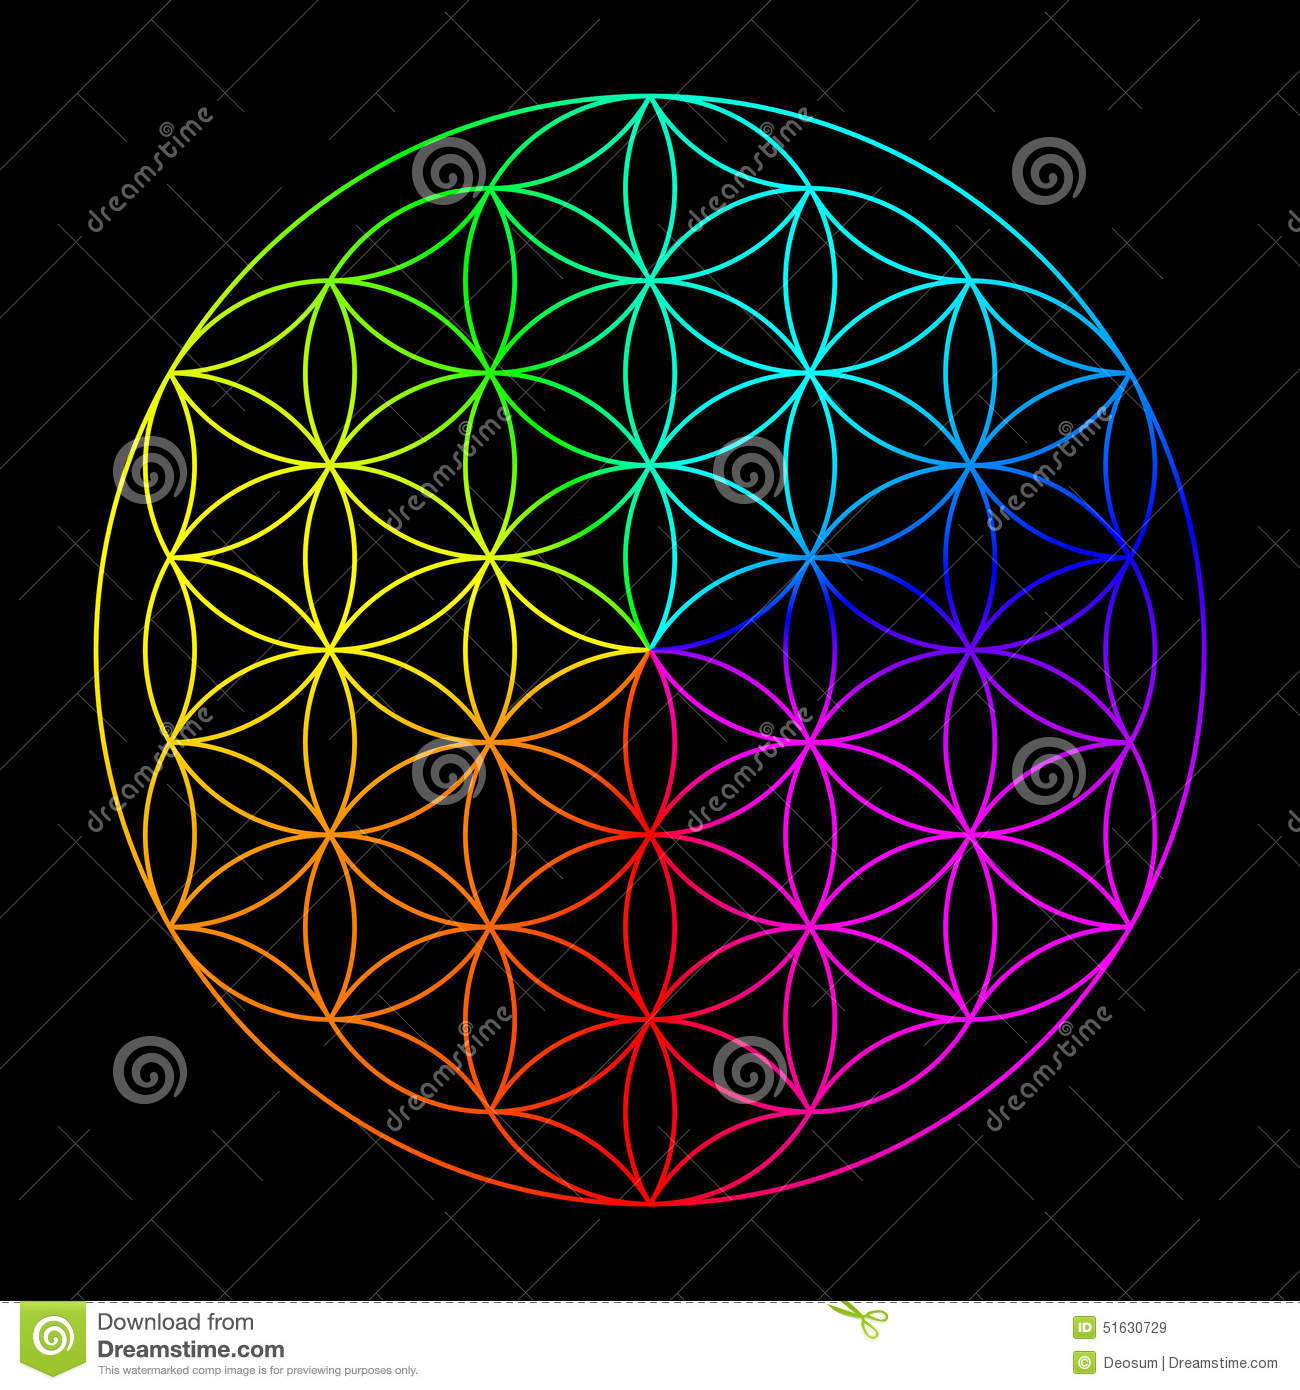 History5 furthermore Mandalas Wheel Windows And Rose Windows likewise Molecular Structure together with Circle Of Fifths Jazz in addition Auspicious Symbols Mandala. on lotus diagram